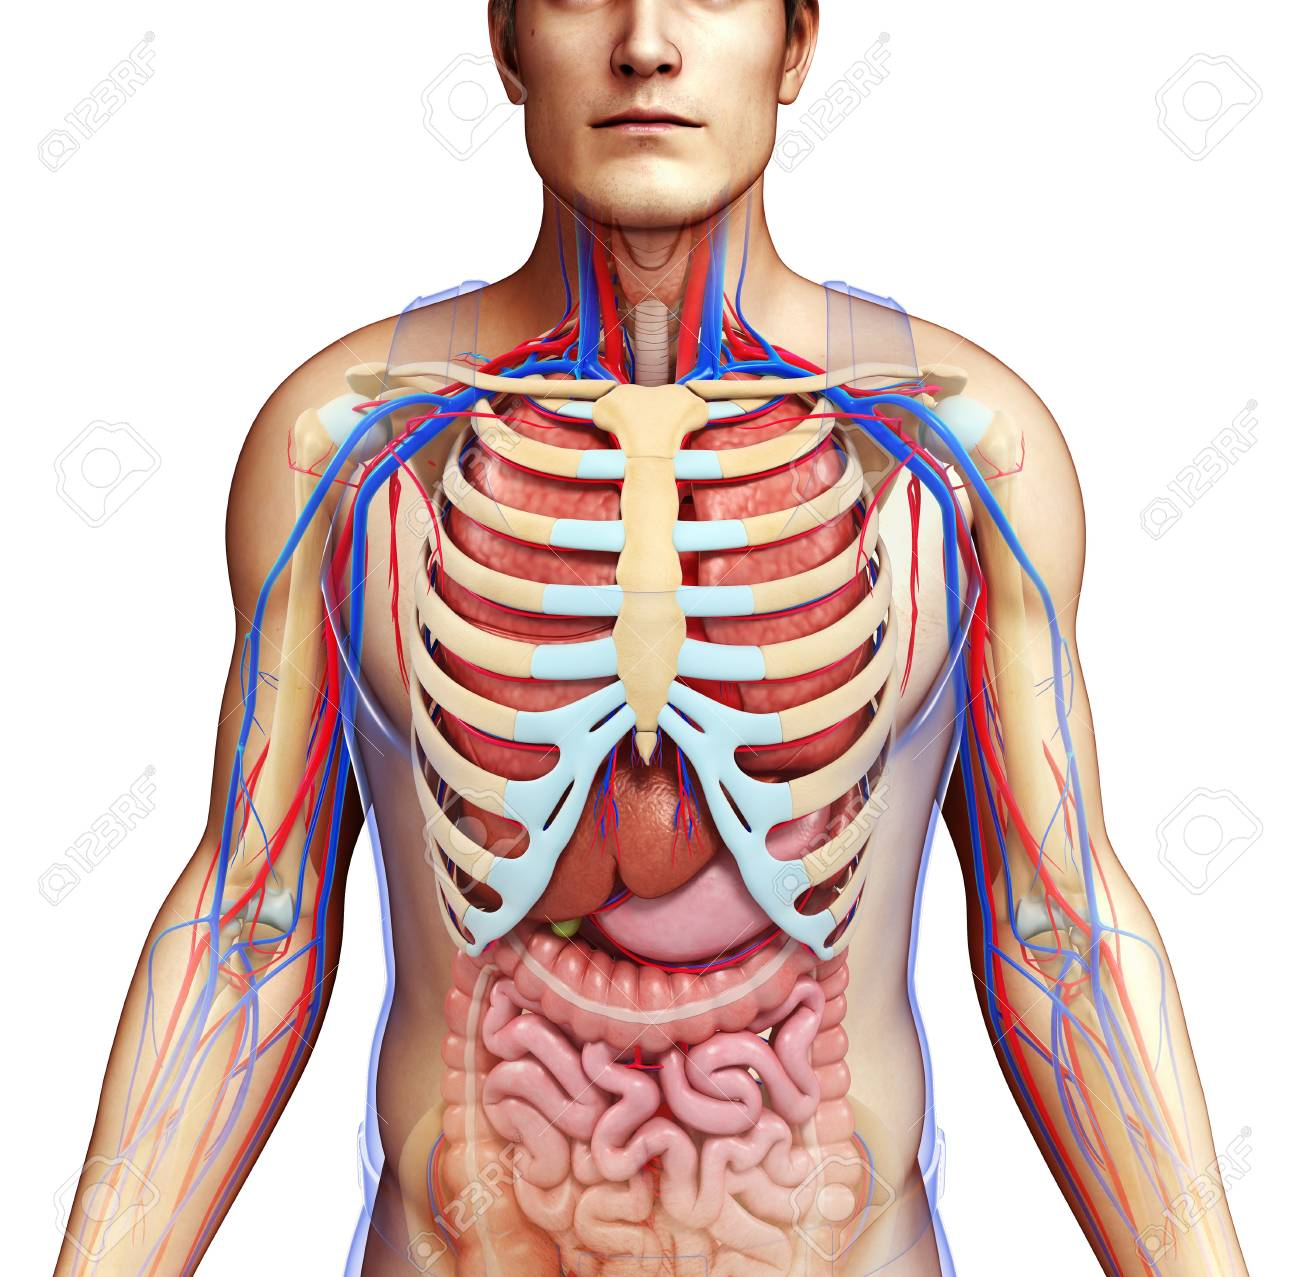 Human Chest Anatomy Illustration Stock Photo Picture And Royalty